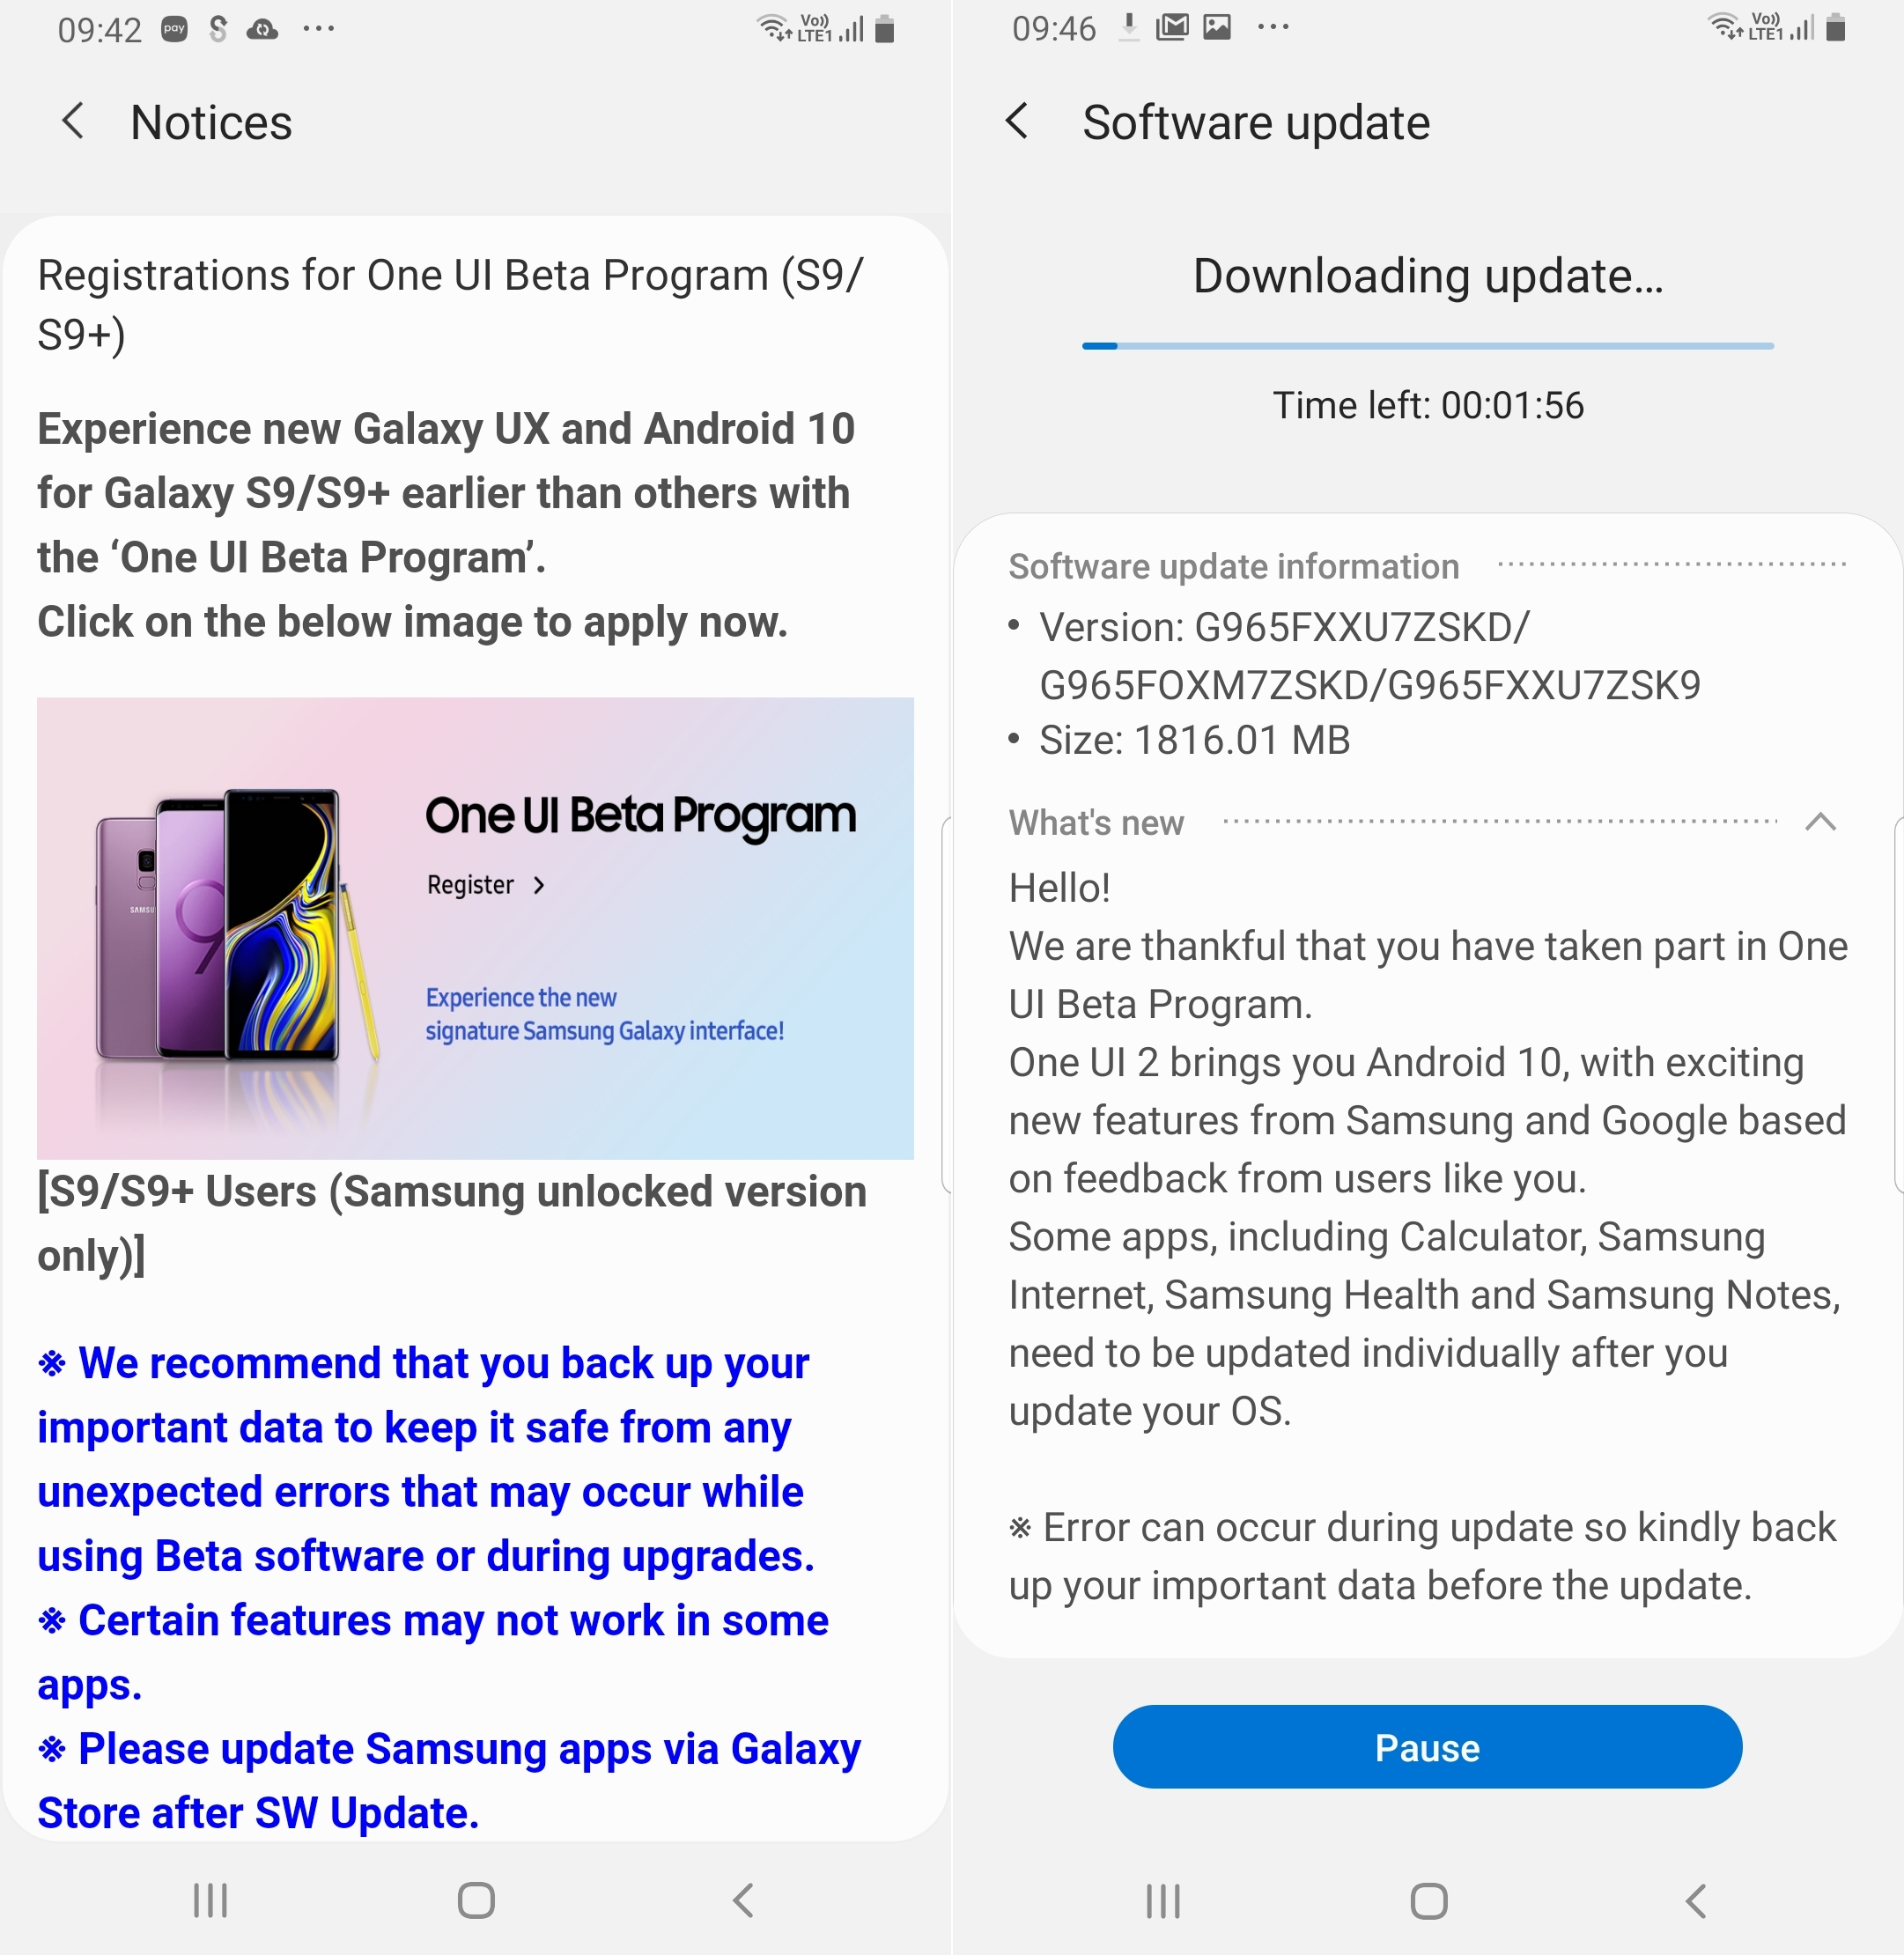 Galaxy s9 android 10 beta program 3